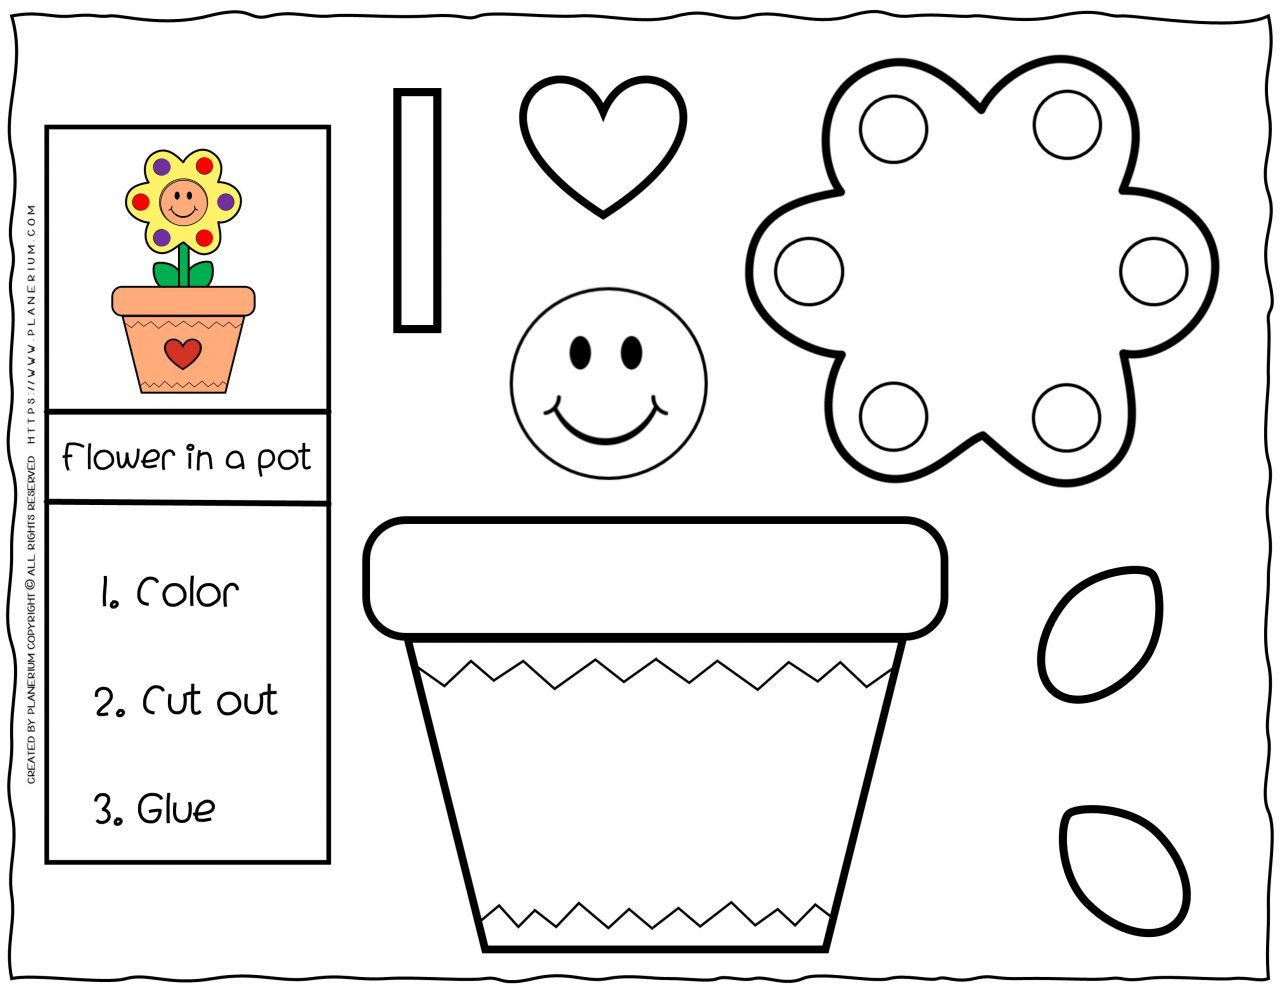 Cut and Glue Worksheet - Flower In a Pot | Planerium